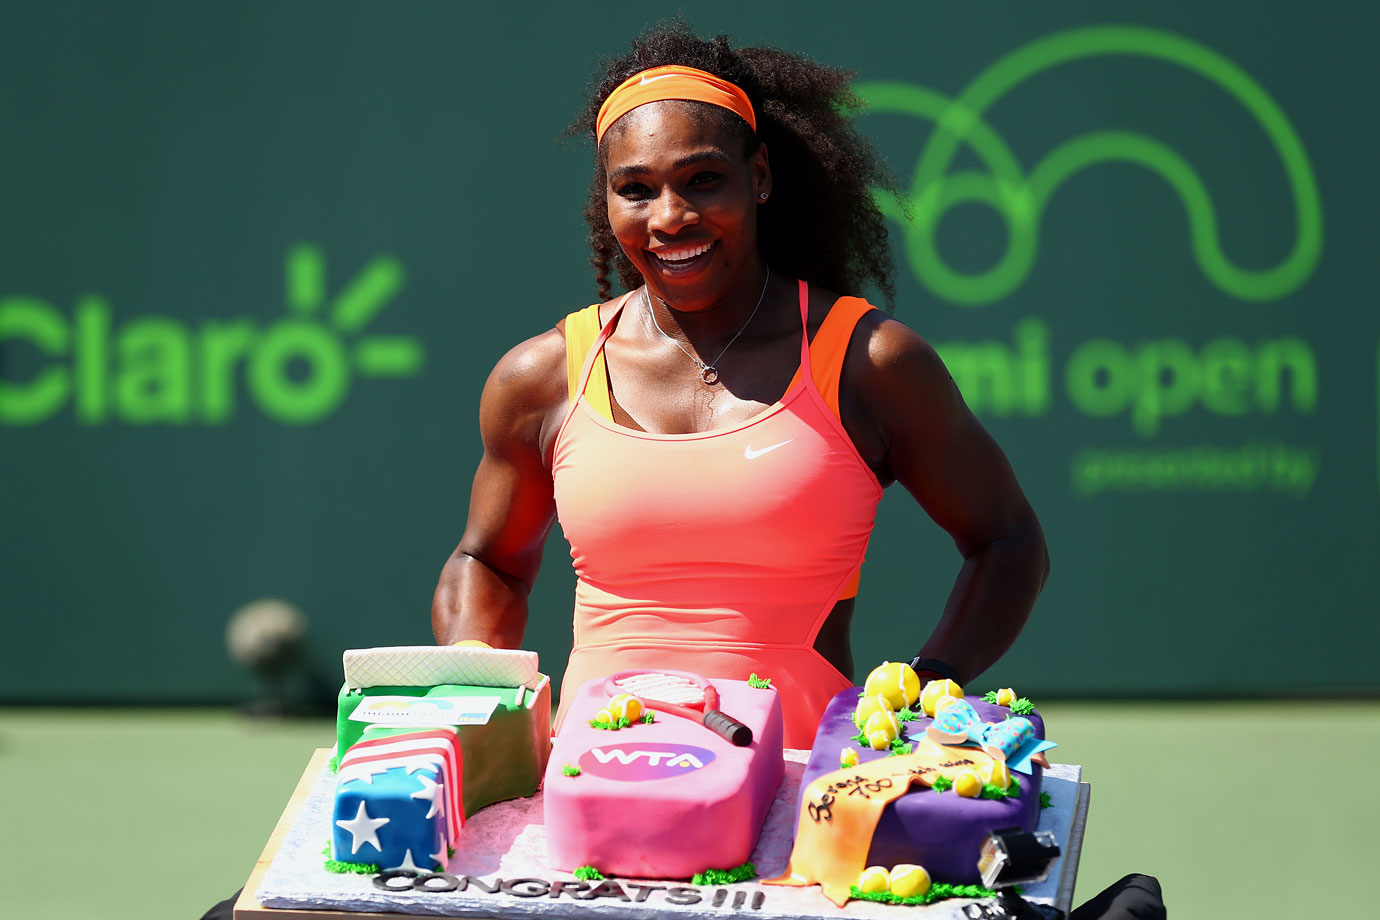 Serena Williams received a cake to celebrate her 700th WTA Tour win on April 1, 2015 in Key Biscayne, Fla.